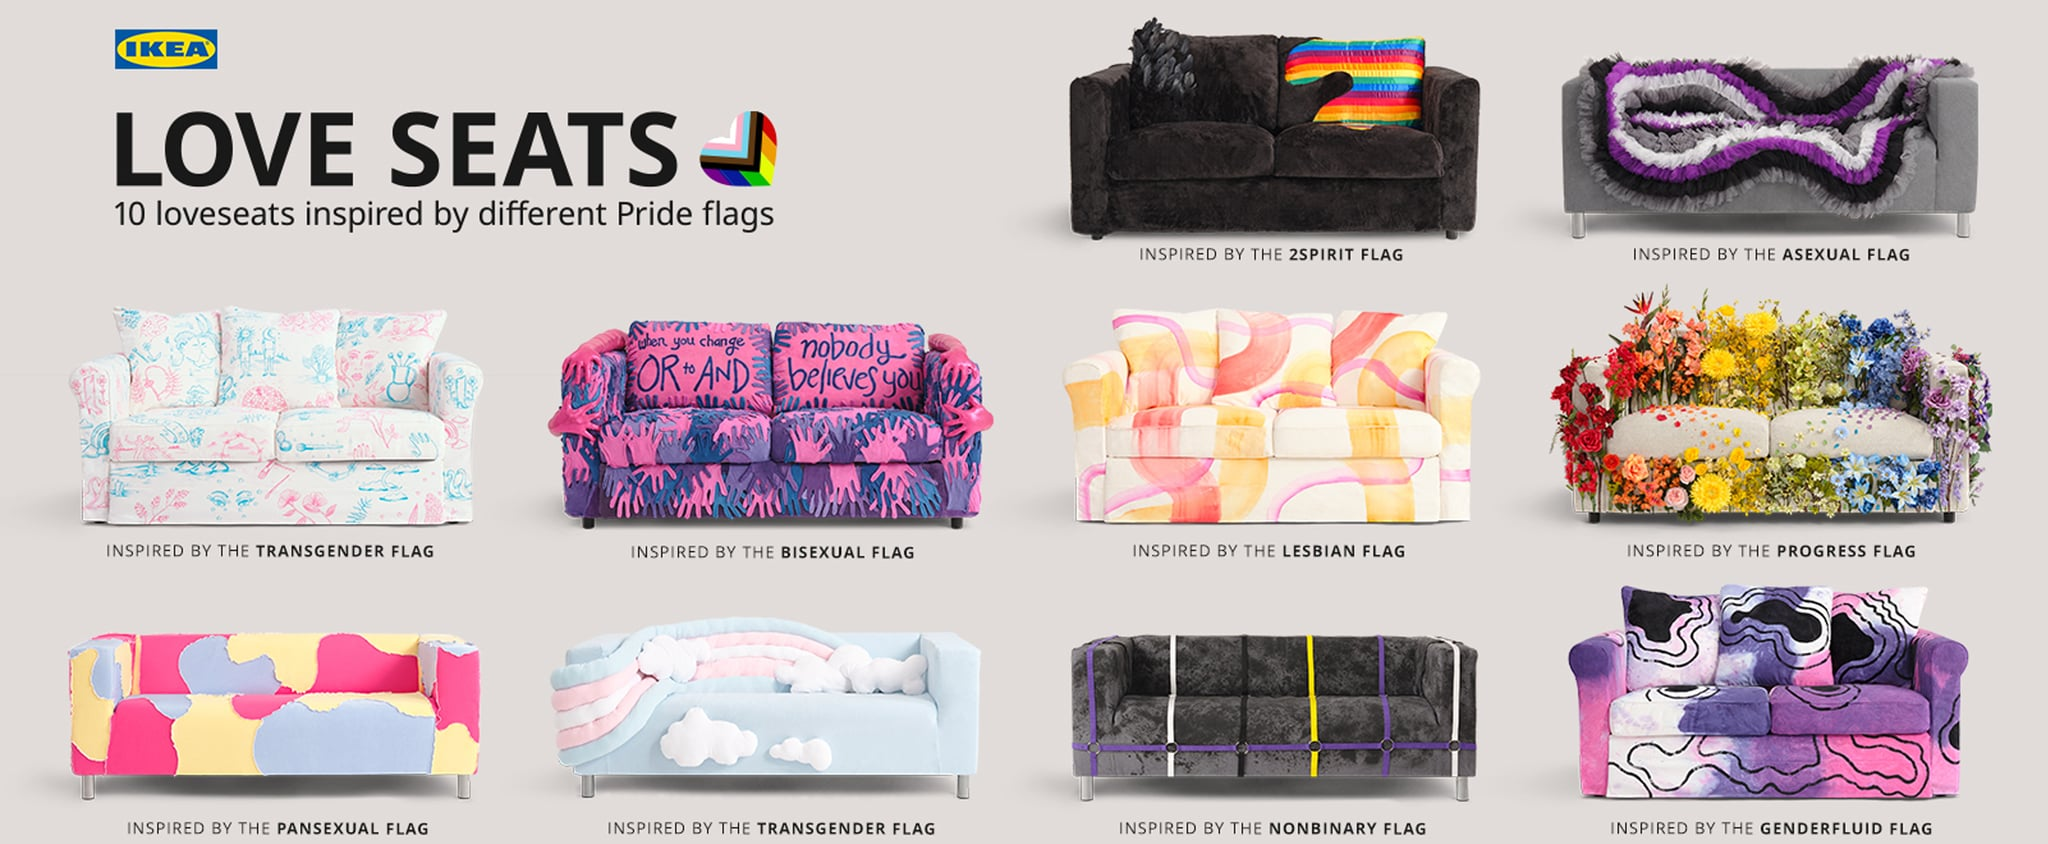 See Ikea's Pride Couches and Love Seats